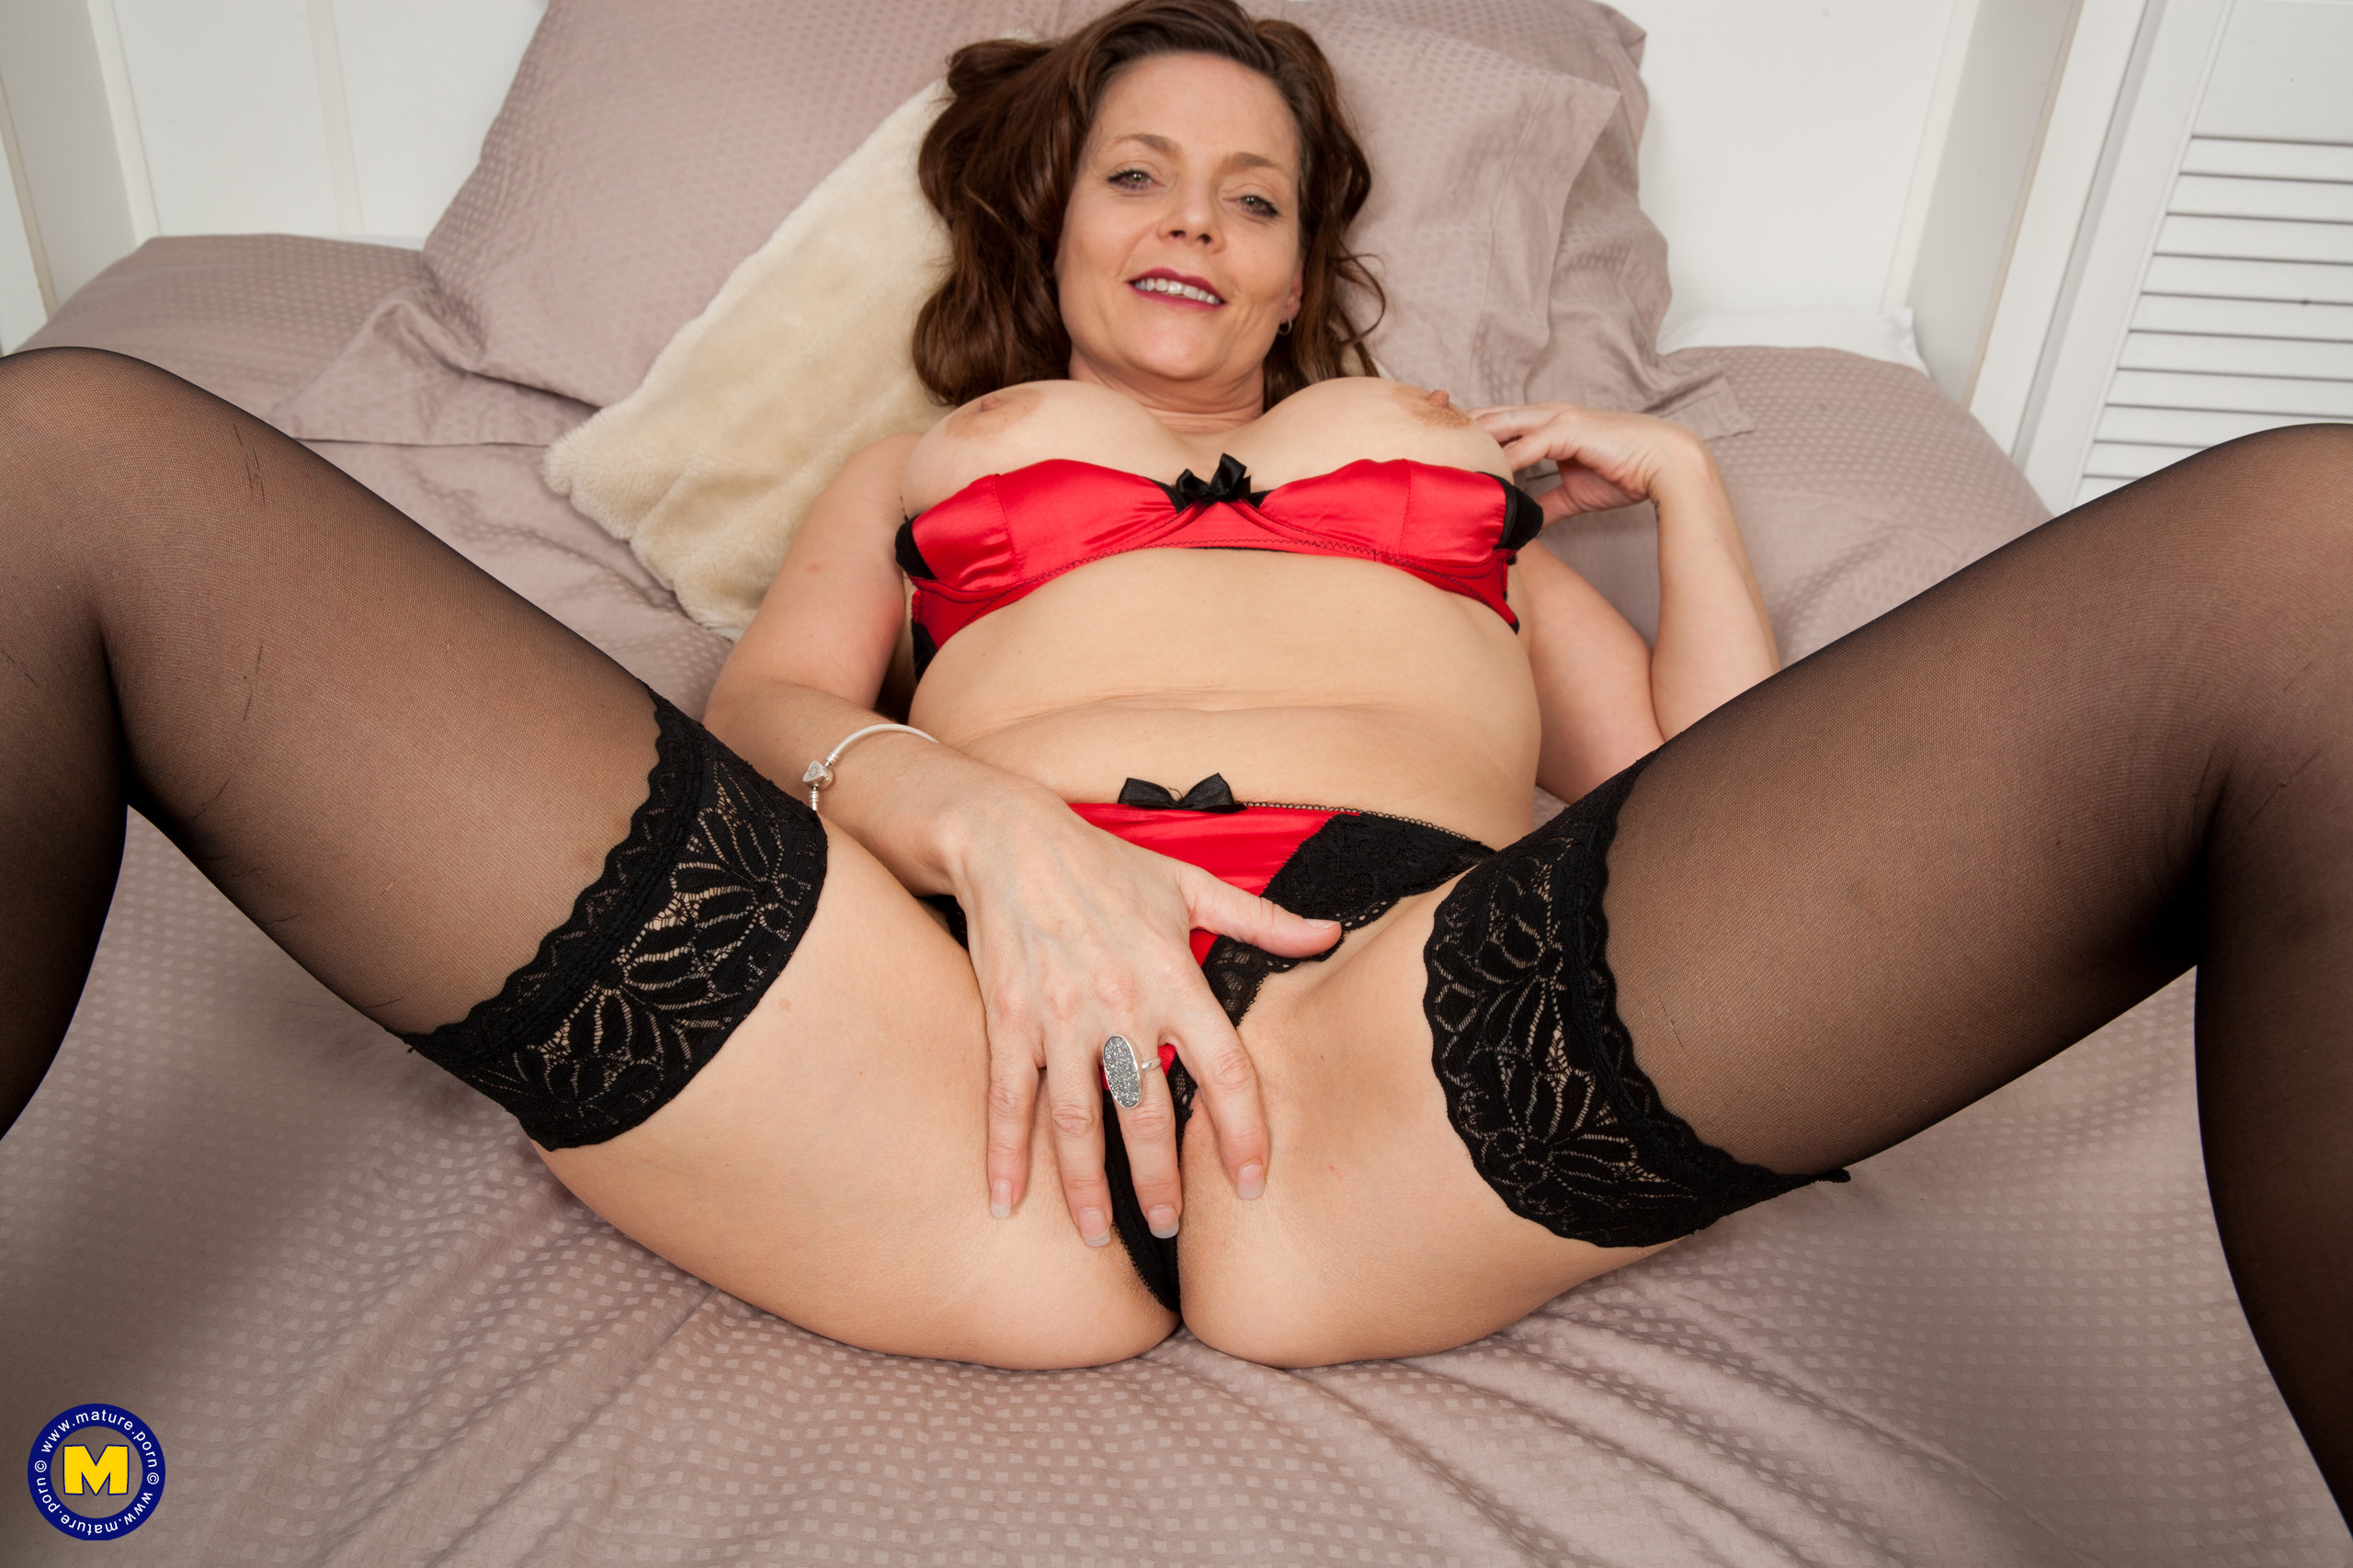 Ultra-kinky smoothly-shaven housewife toying with her muff